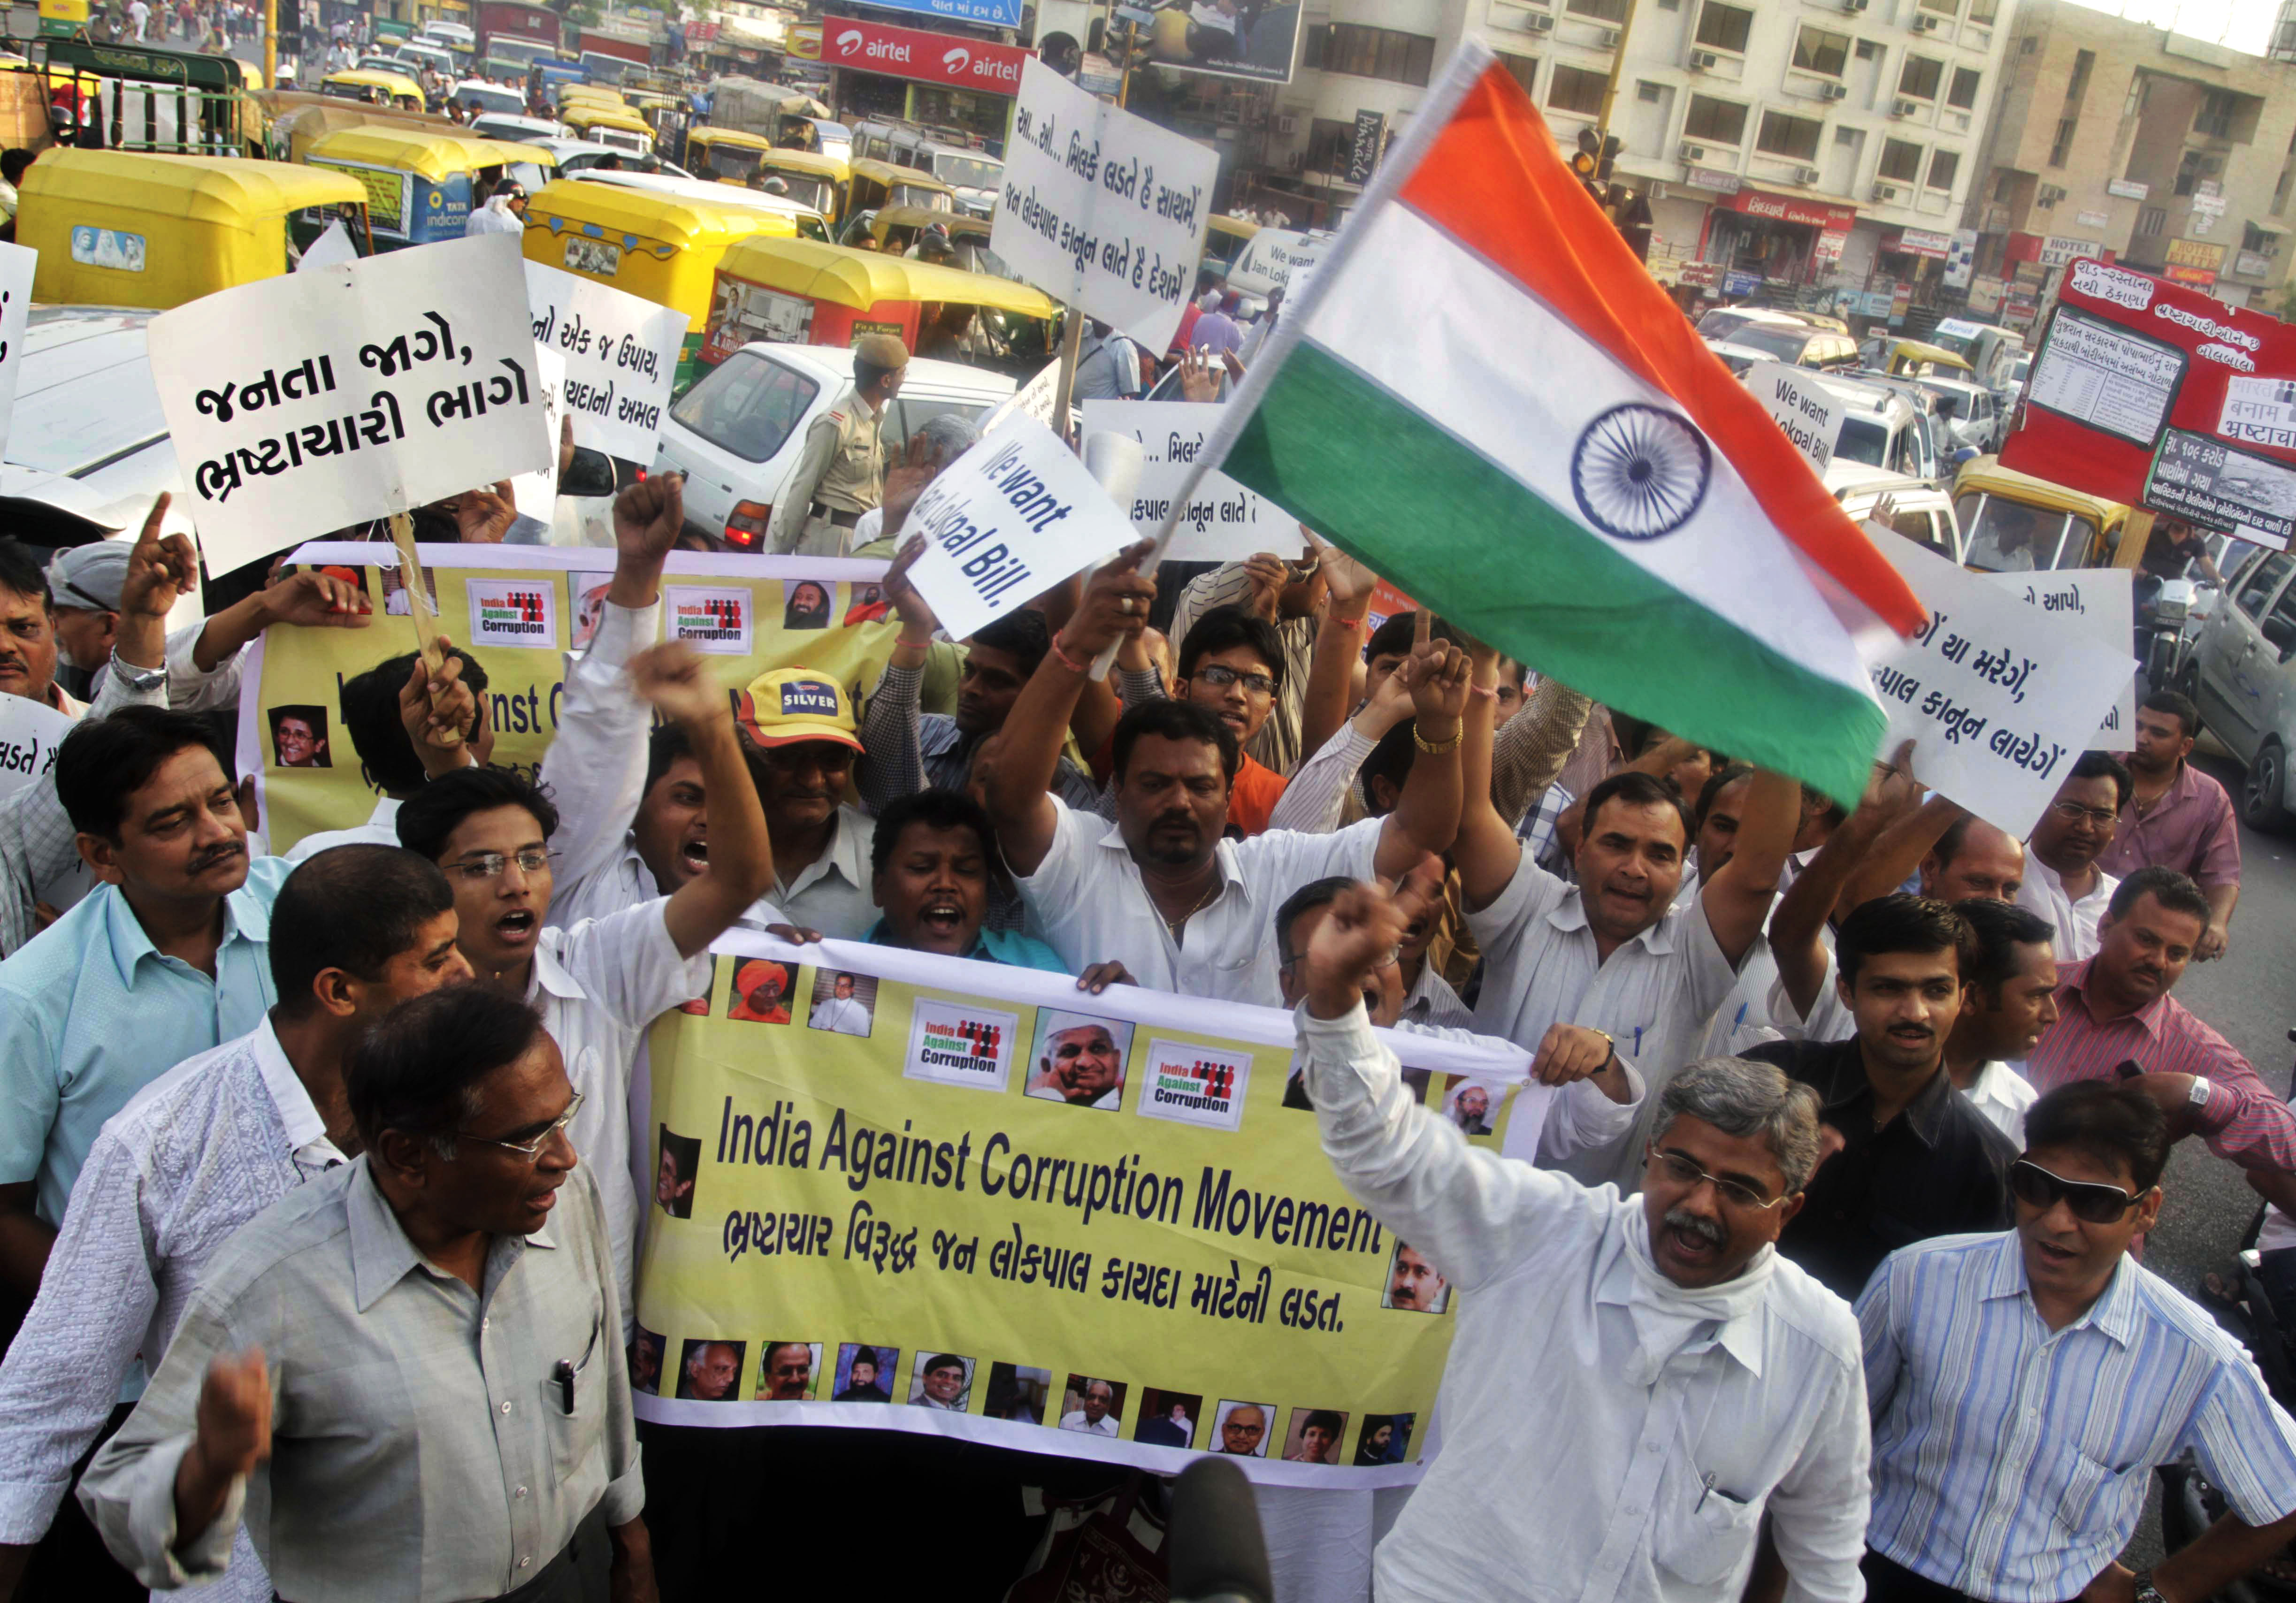 Crowd of anti-corruption campaigners marching in street (© AP Images)